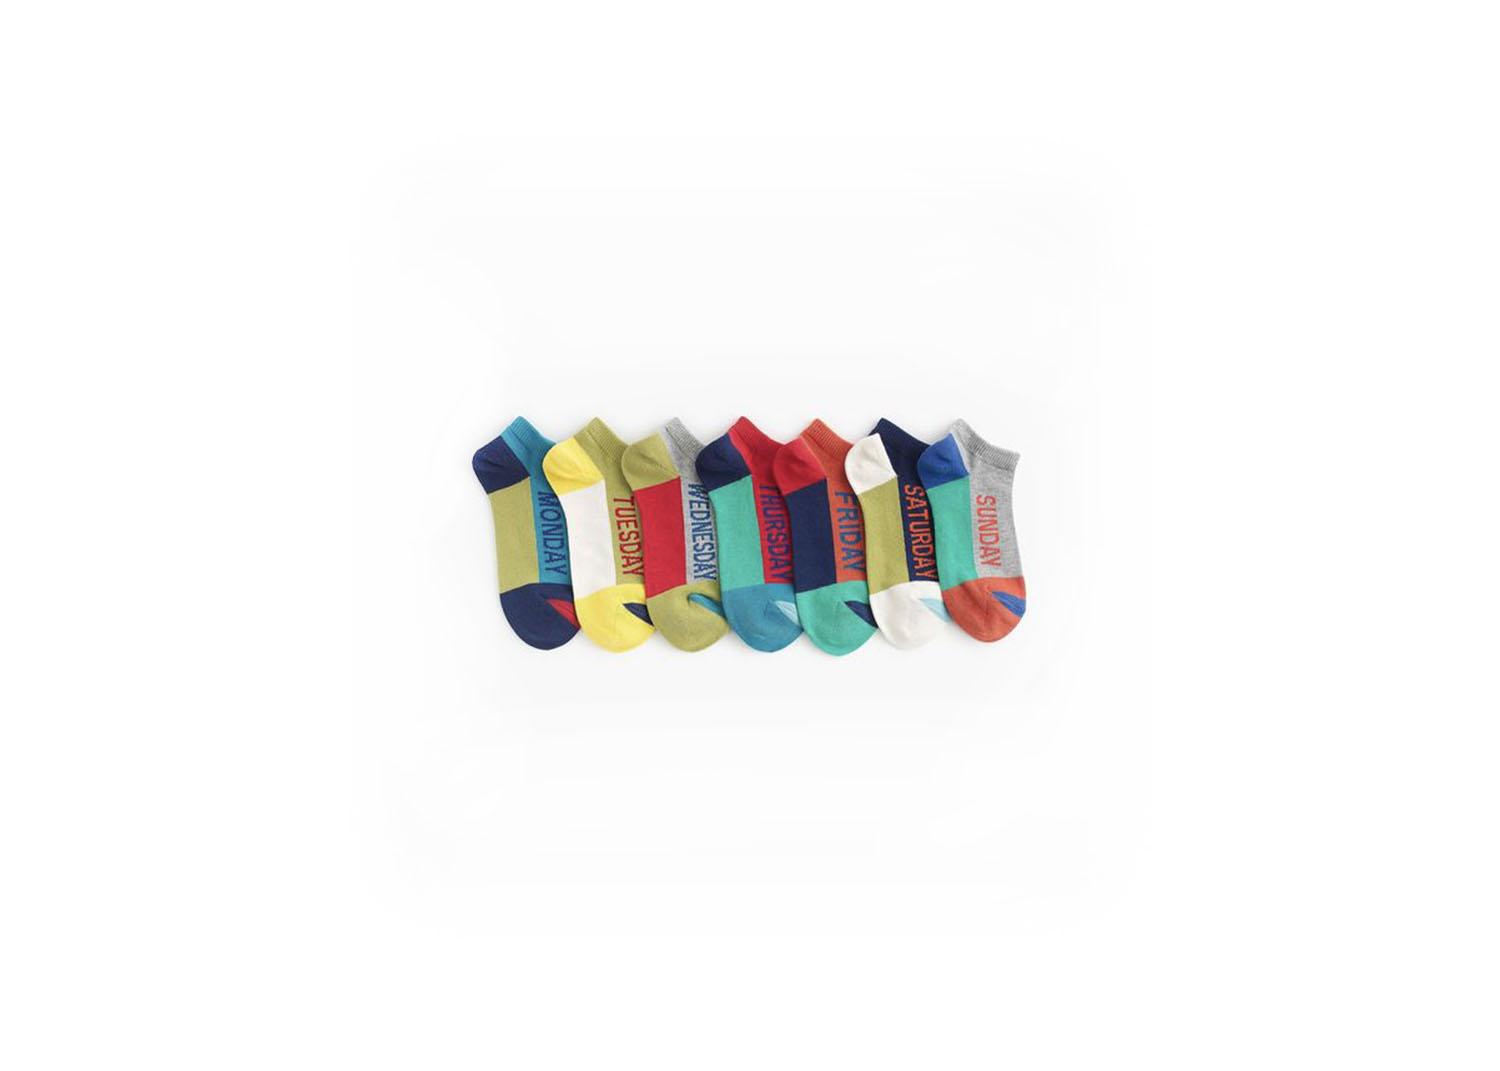 Day of the Week Ankle Socks - $26.50